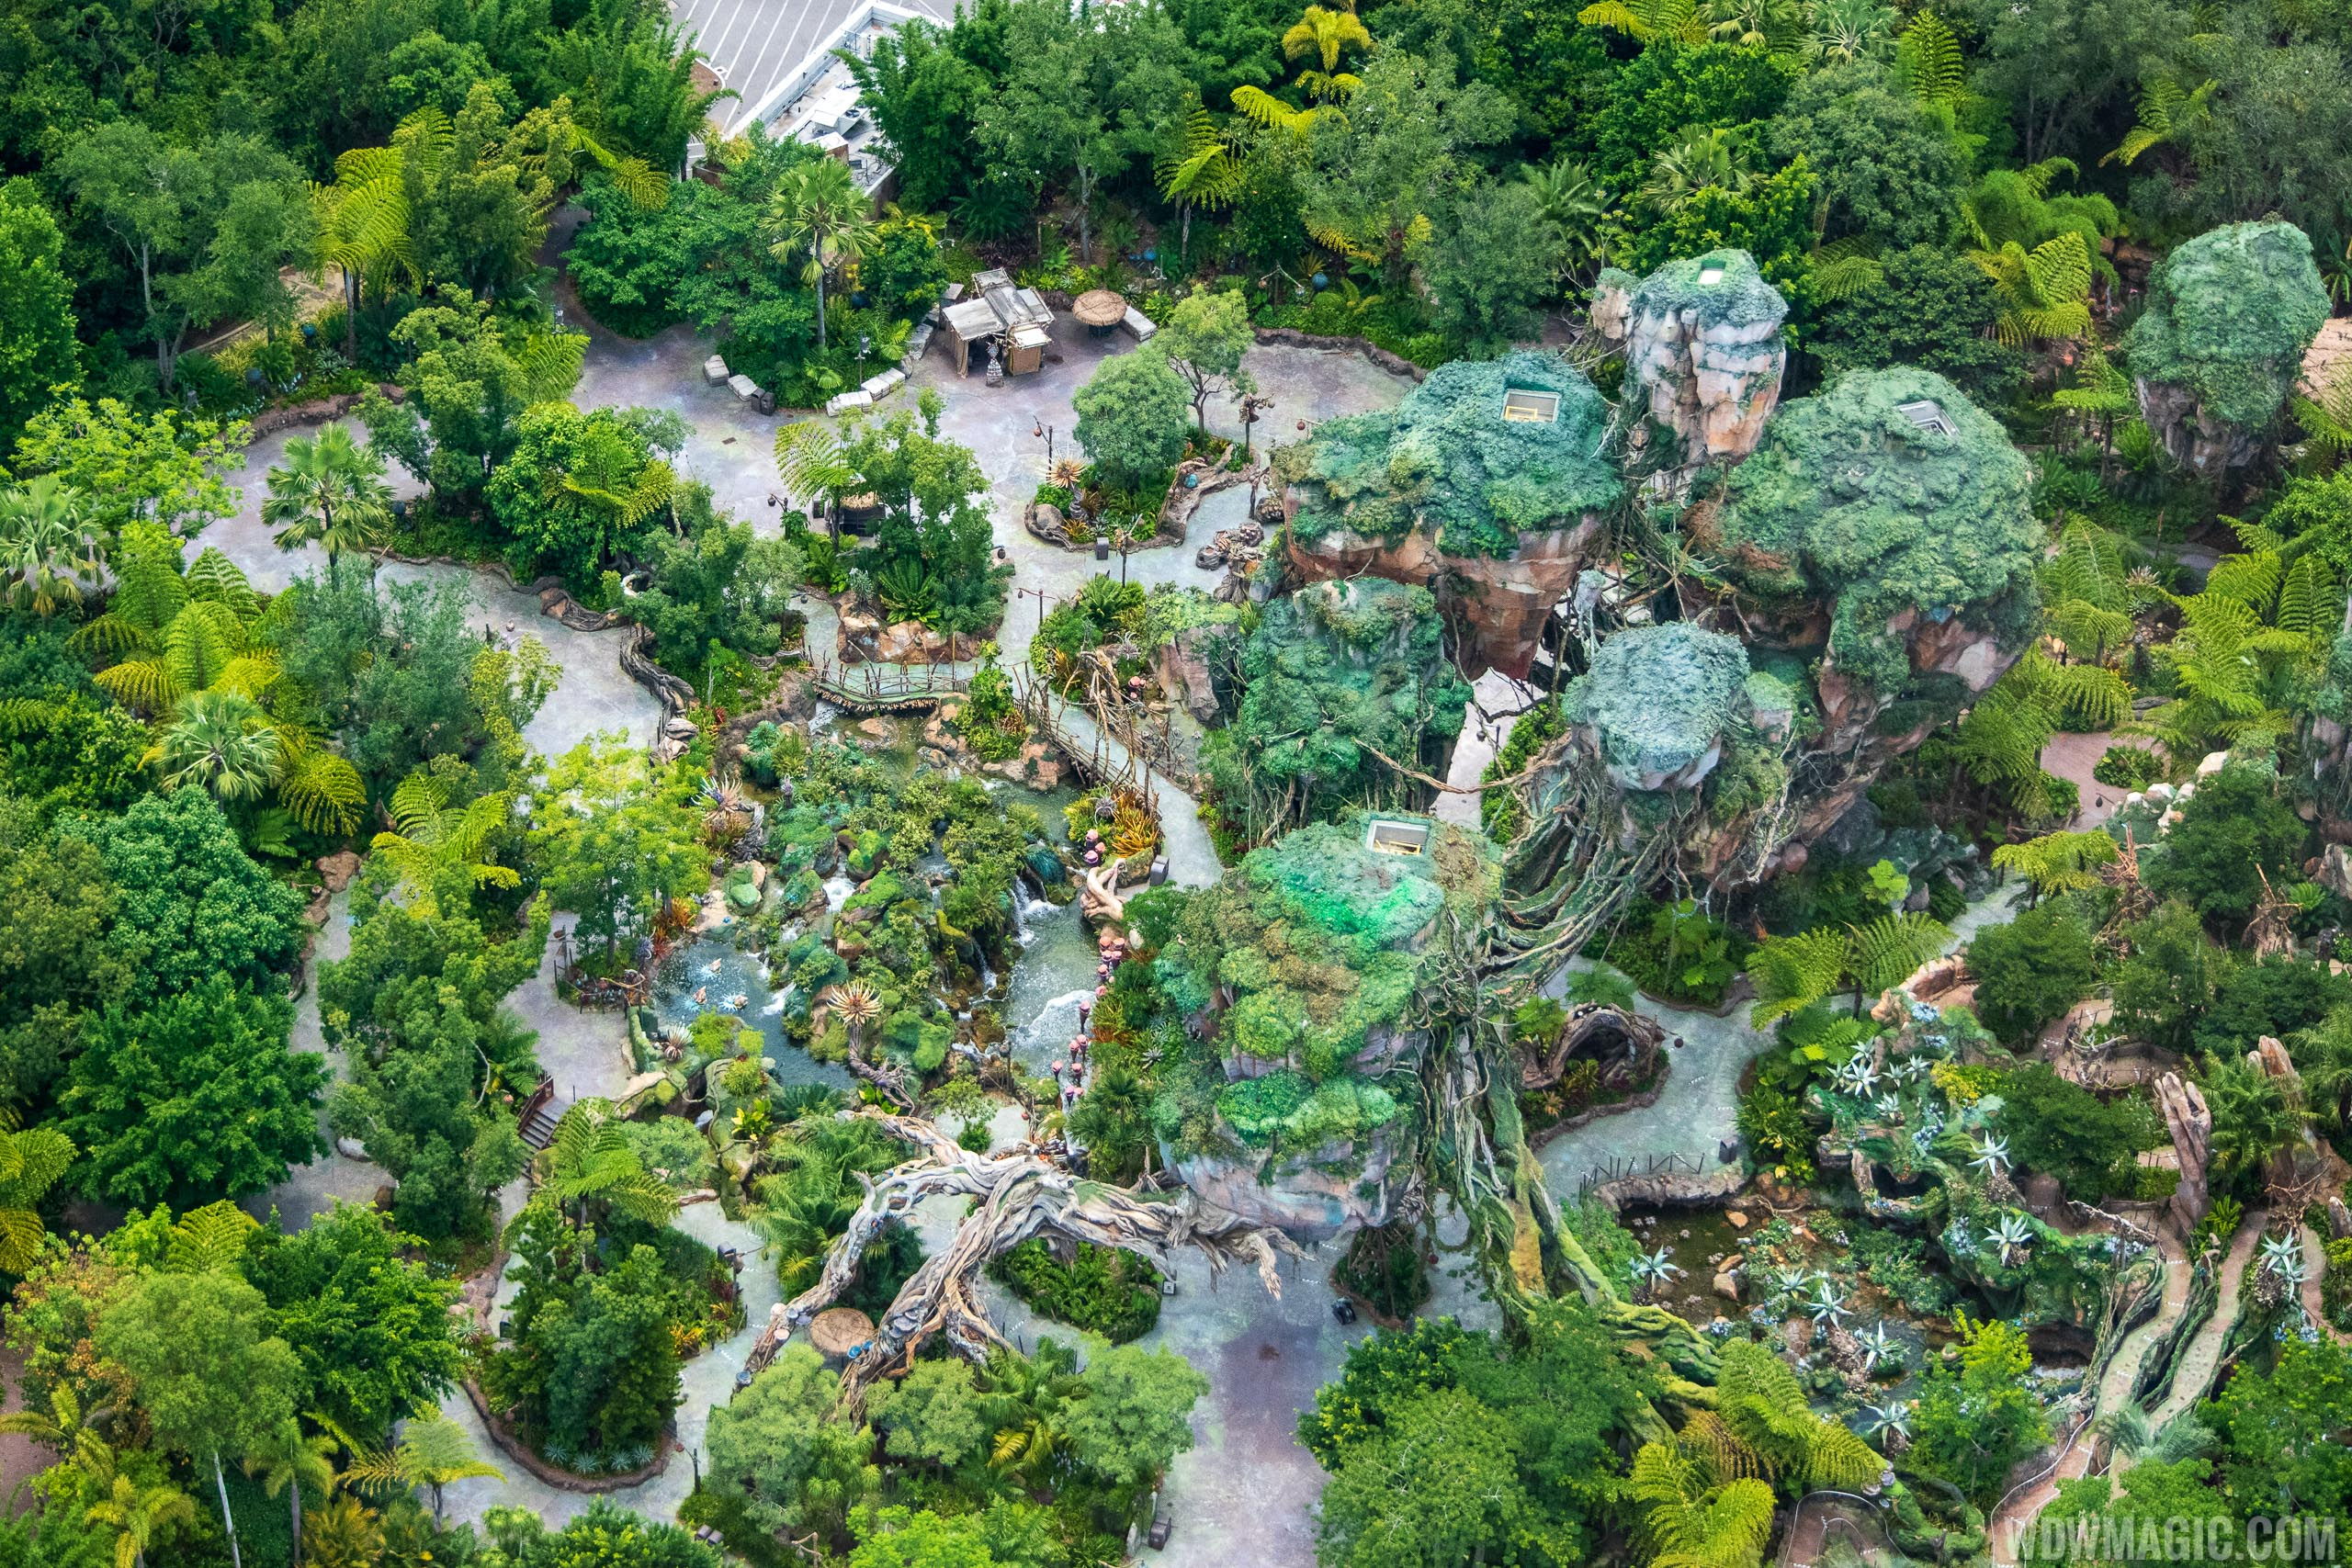 Pandora - The World of Avatar aerial view June 2020